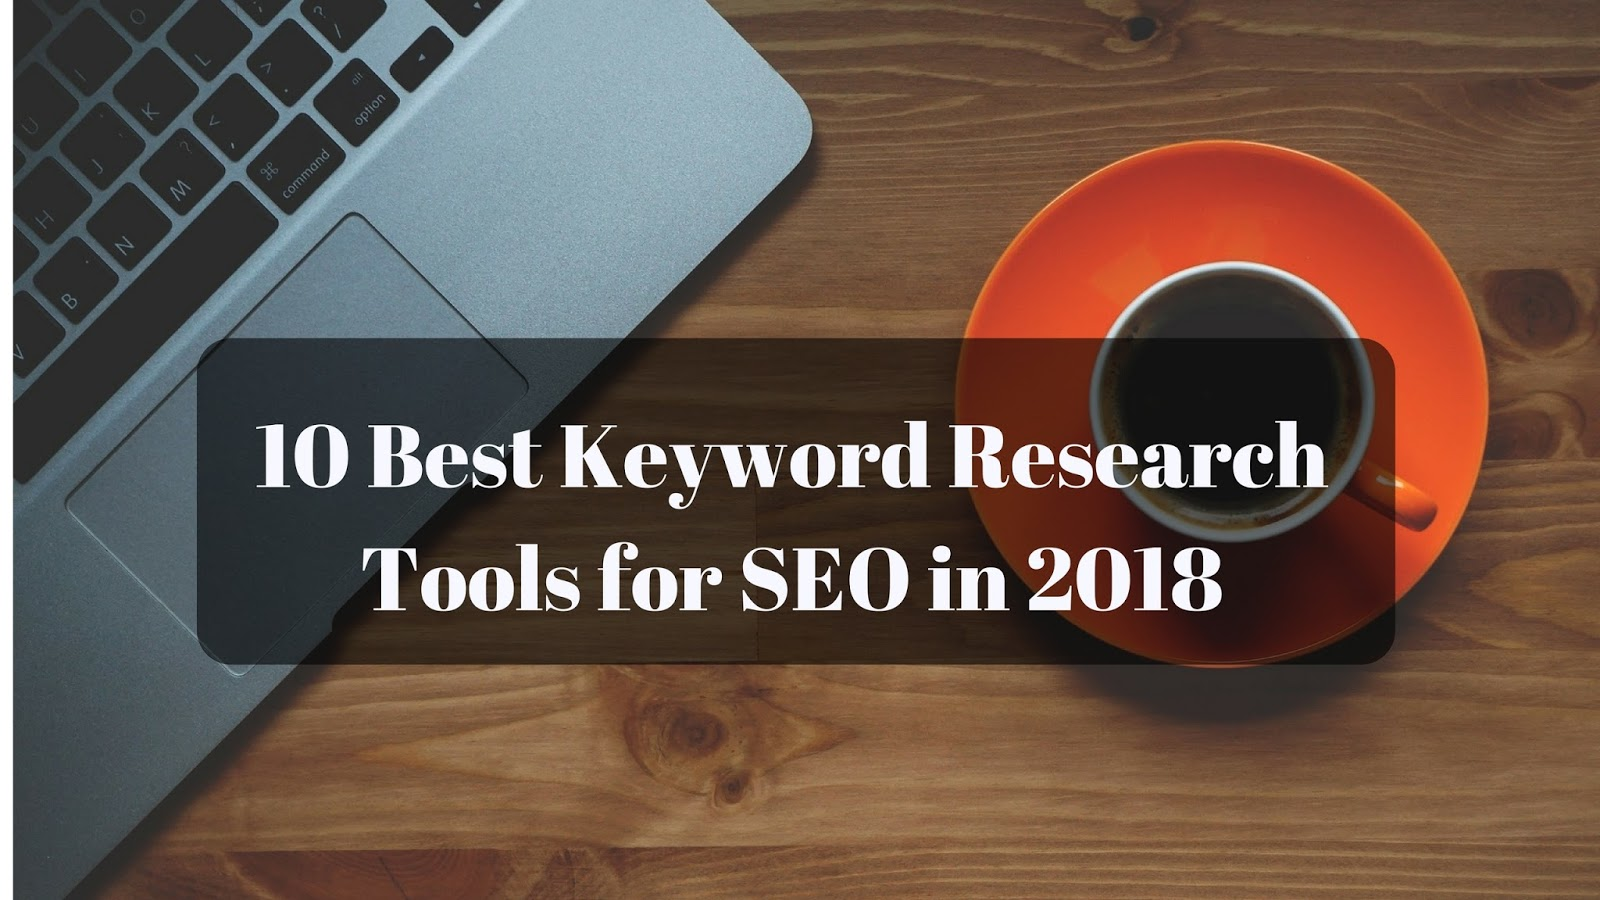 best keyword research tools online, top keyword research tools, keyword research tools